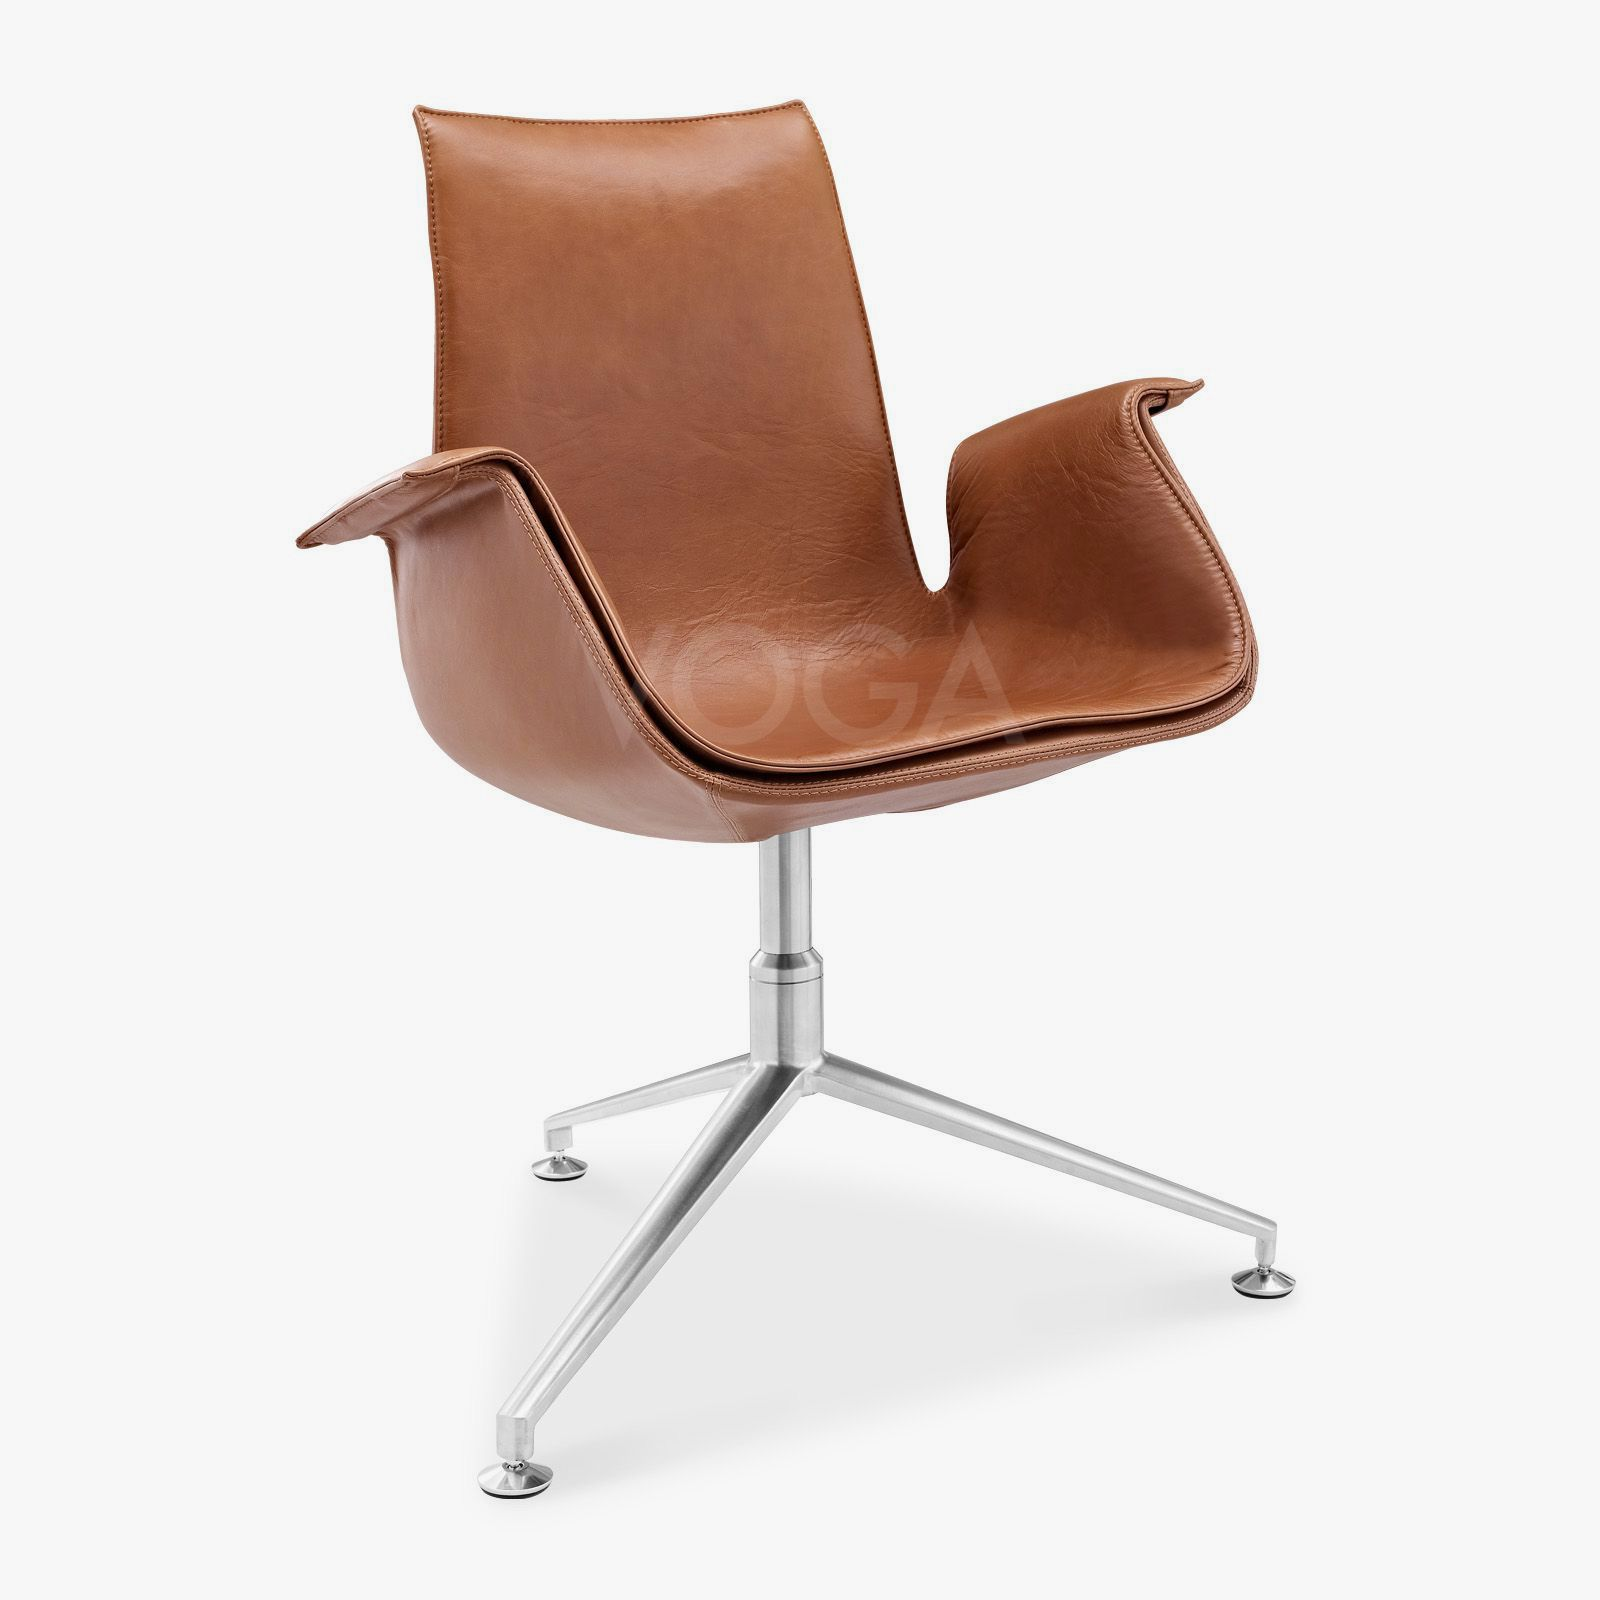 replica eames group standard aluminium chair cf. Our Iconic Chair Collection Has All Your Seating Needs Covered With Classically Inspired Designs From The Likes Of Eames, Panton, Wegner And Jacobsen. Replica Eames Group Standard Aluminium Cf